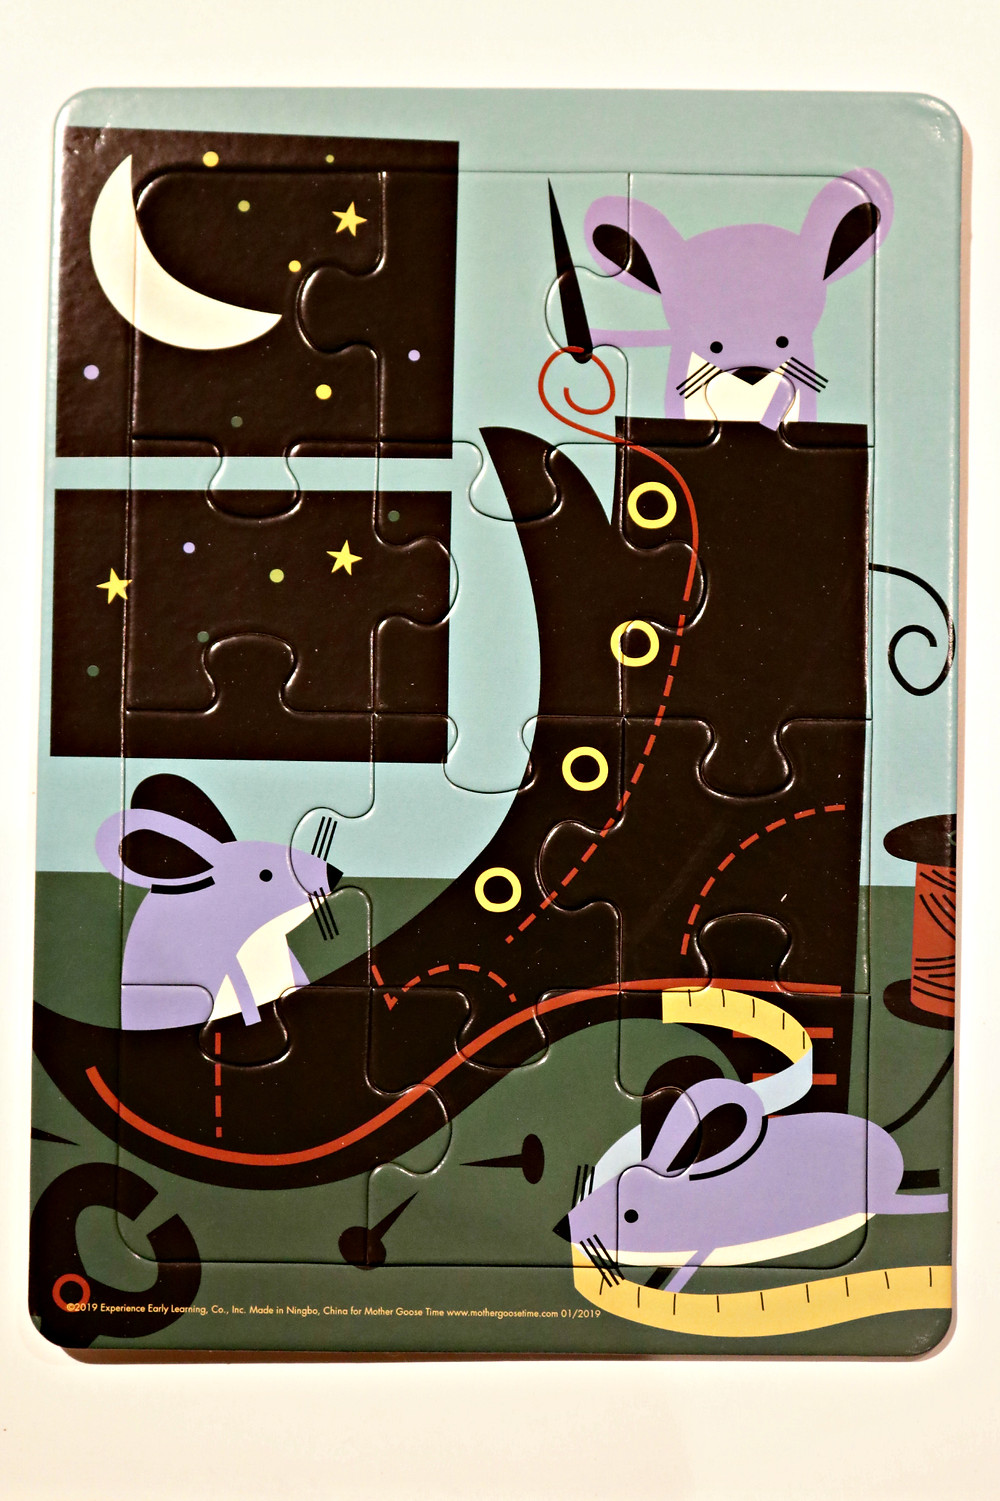 puzzle featuring mice sewing boot